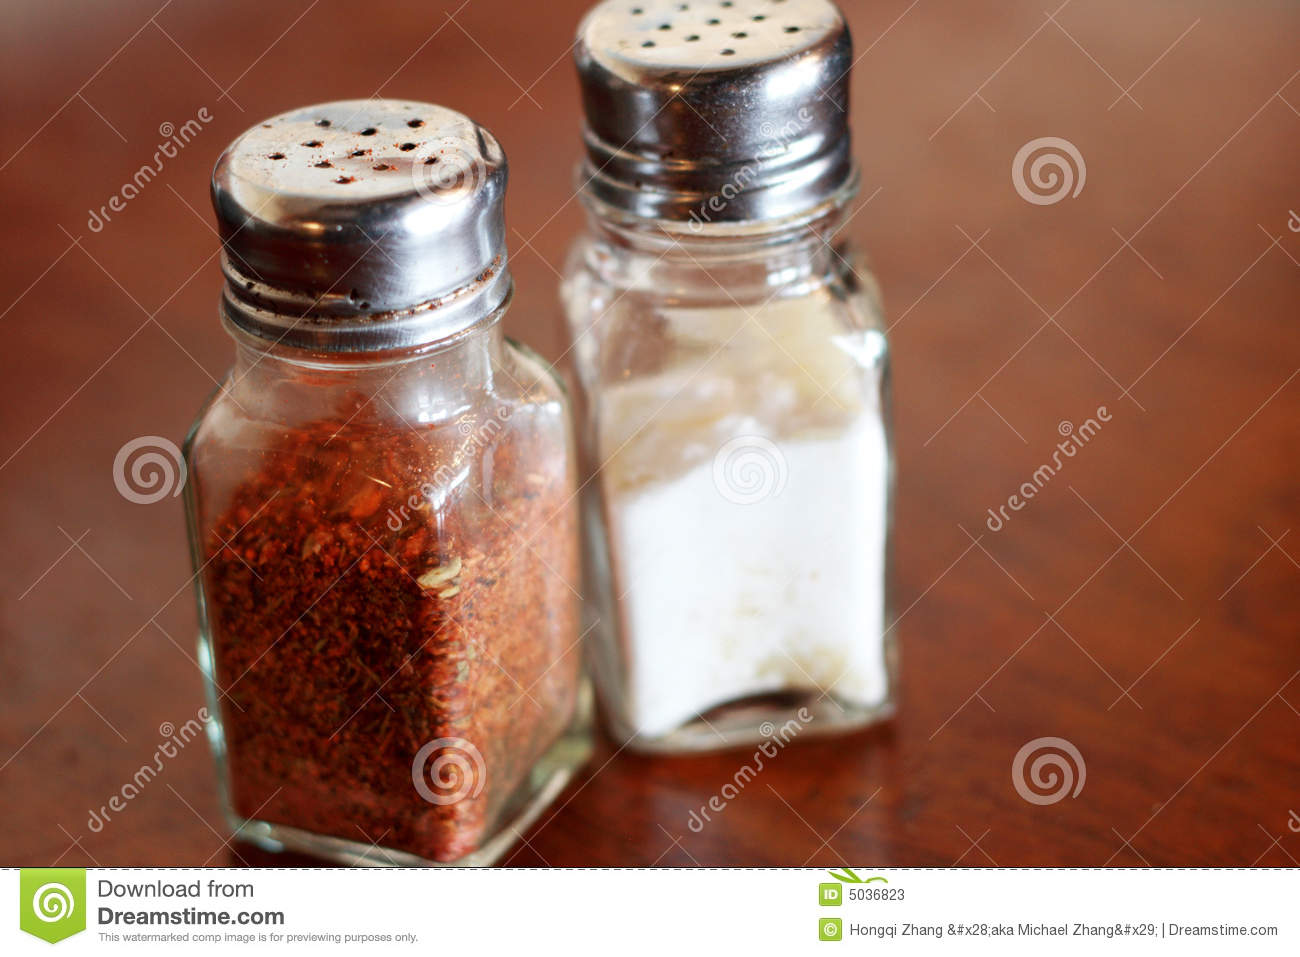 Pepper and salt